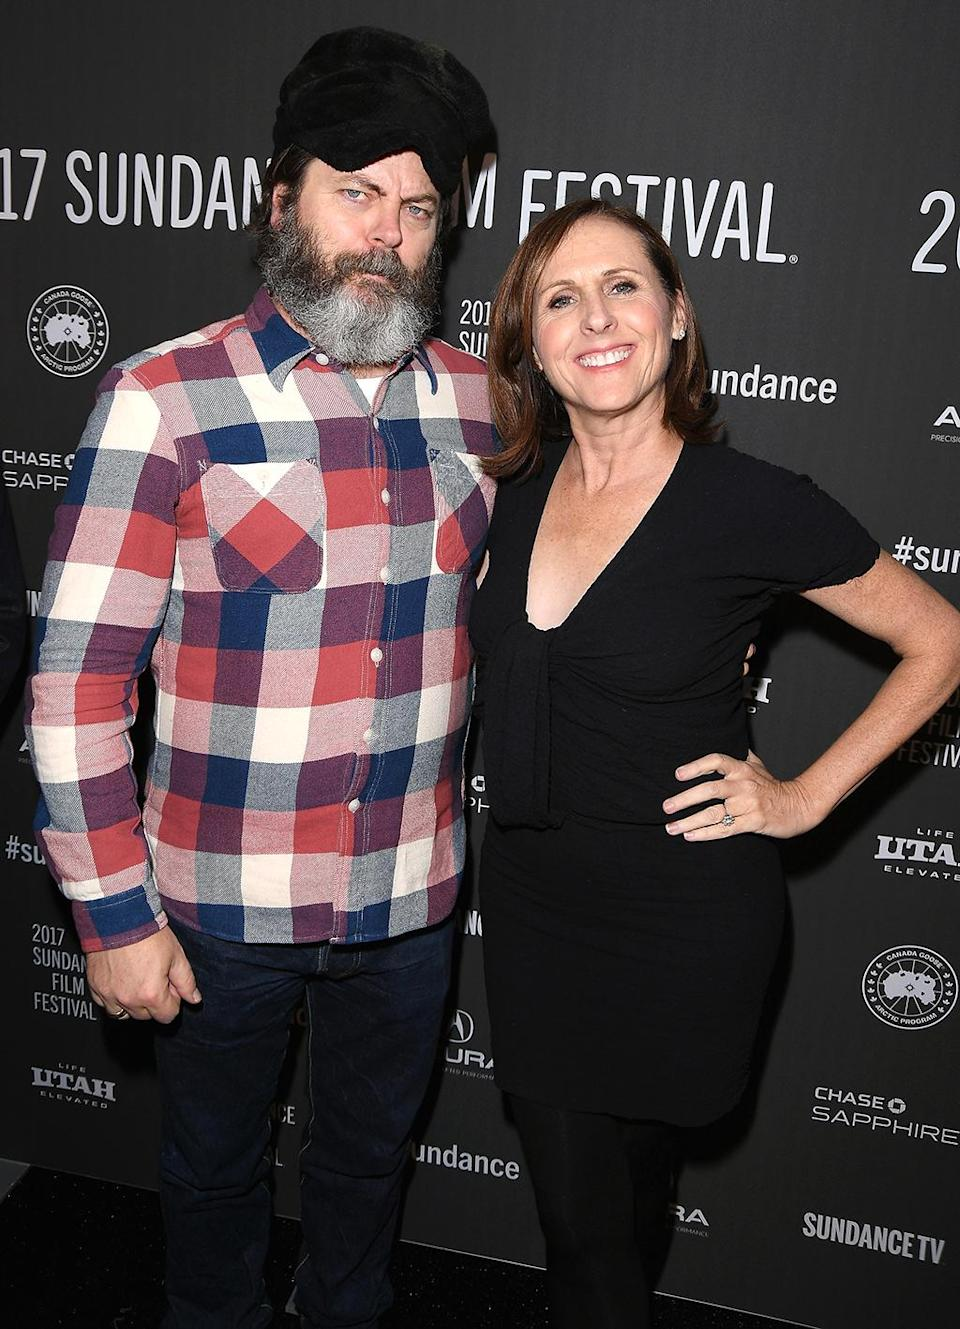 <p>The hilarious actors attend the premiere of their comedy 'The Little Hours' on Jan. 19. (Photo: George Pimentel/Getty Images) </p>